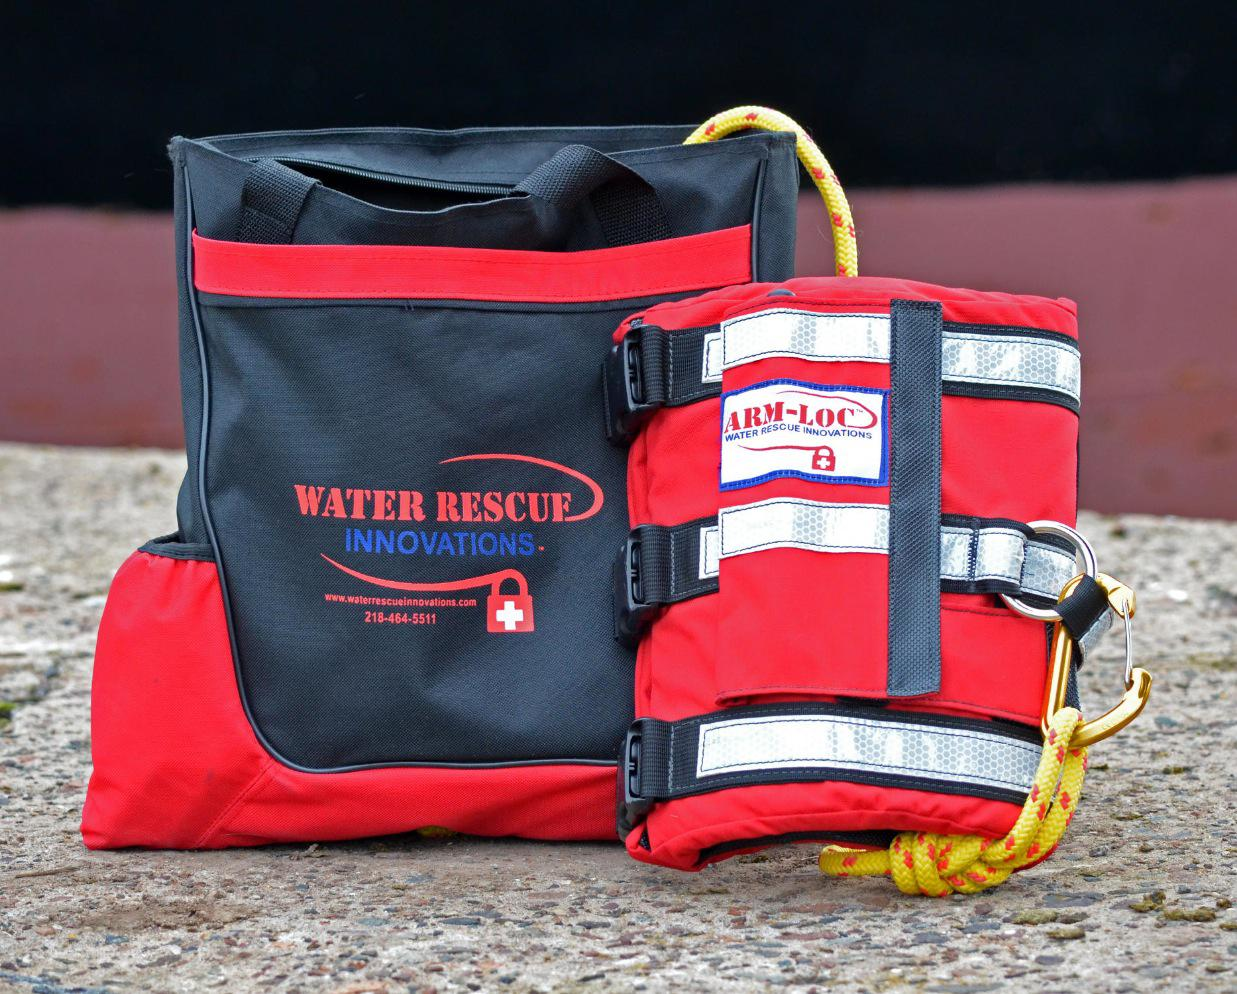 Water Rescue Innovations Arm-Loc bag